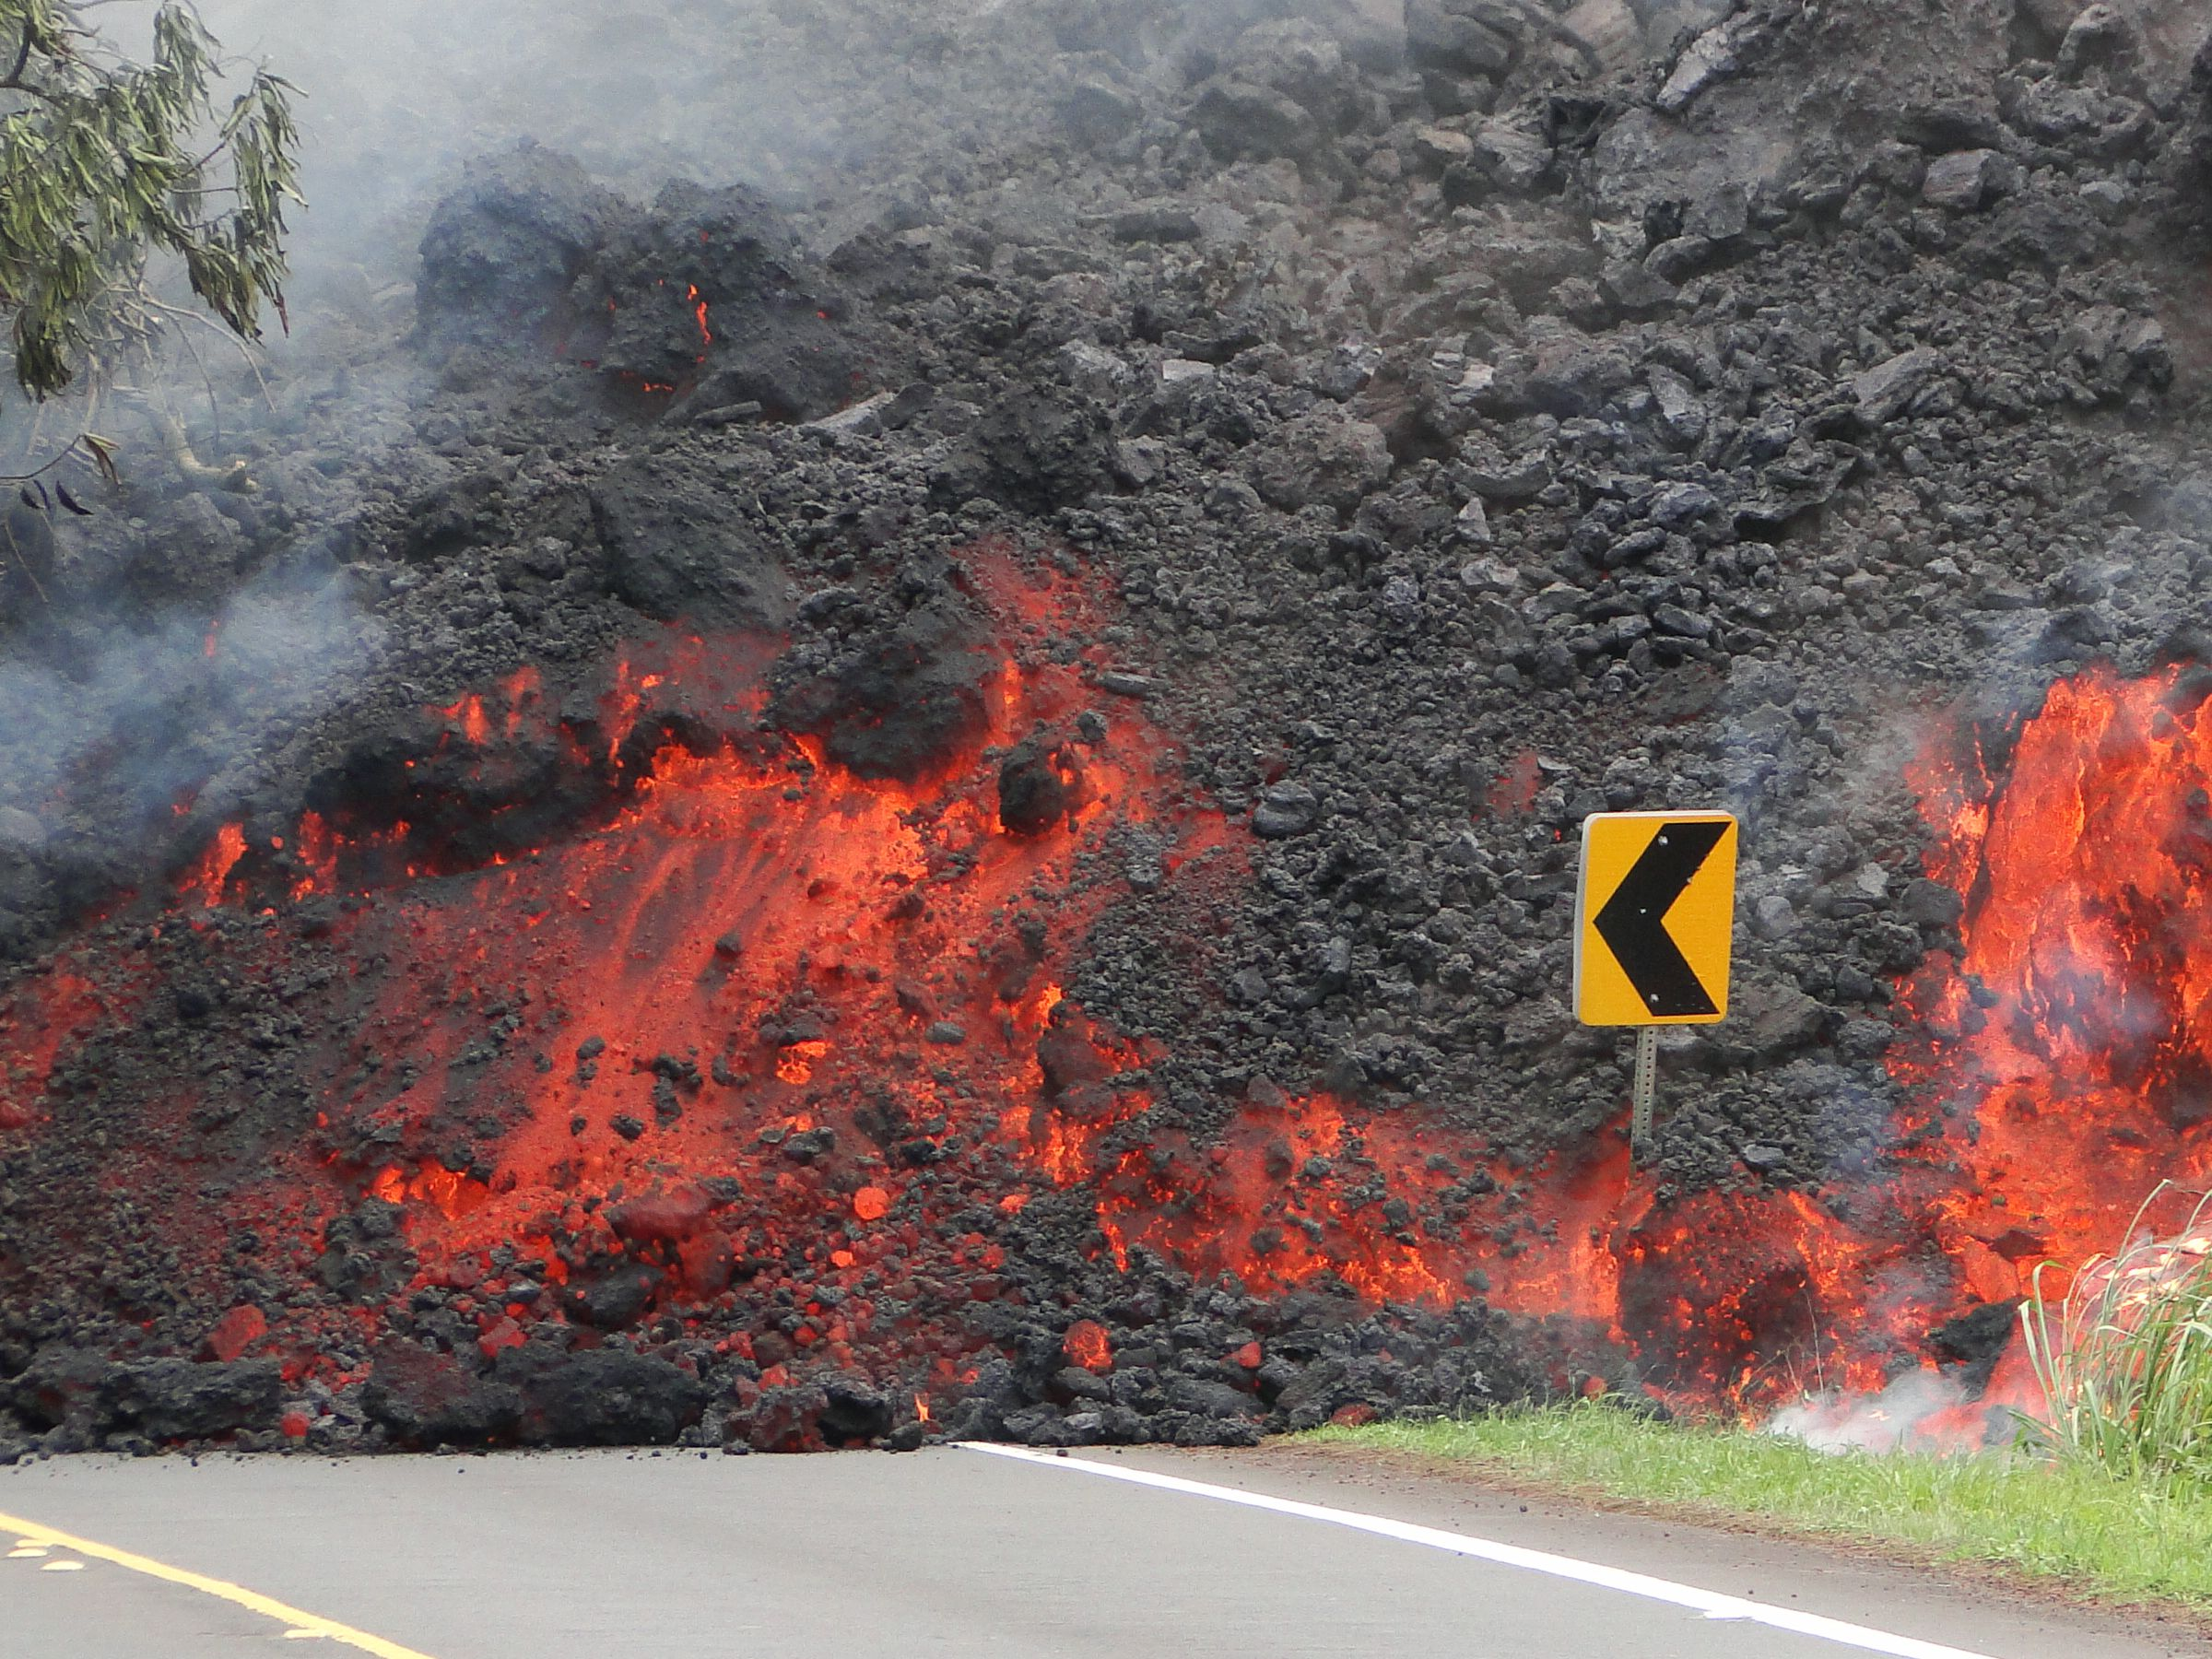 Threat level at Kilauea lowered again, signaling the end of an eruptive era